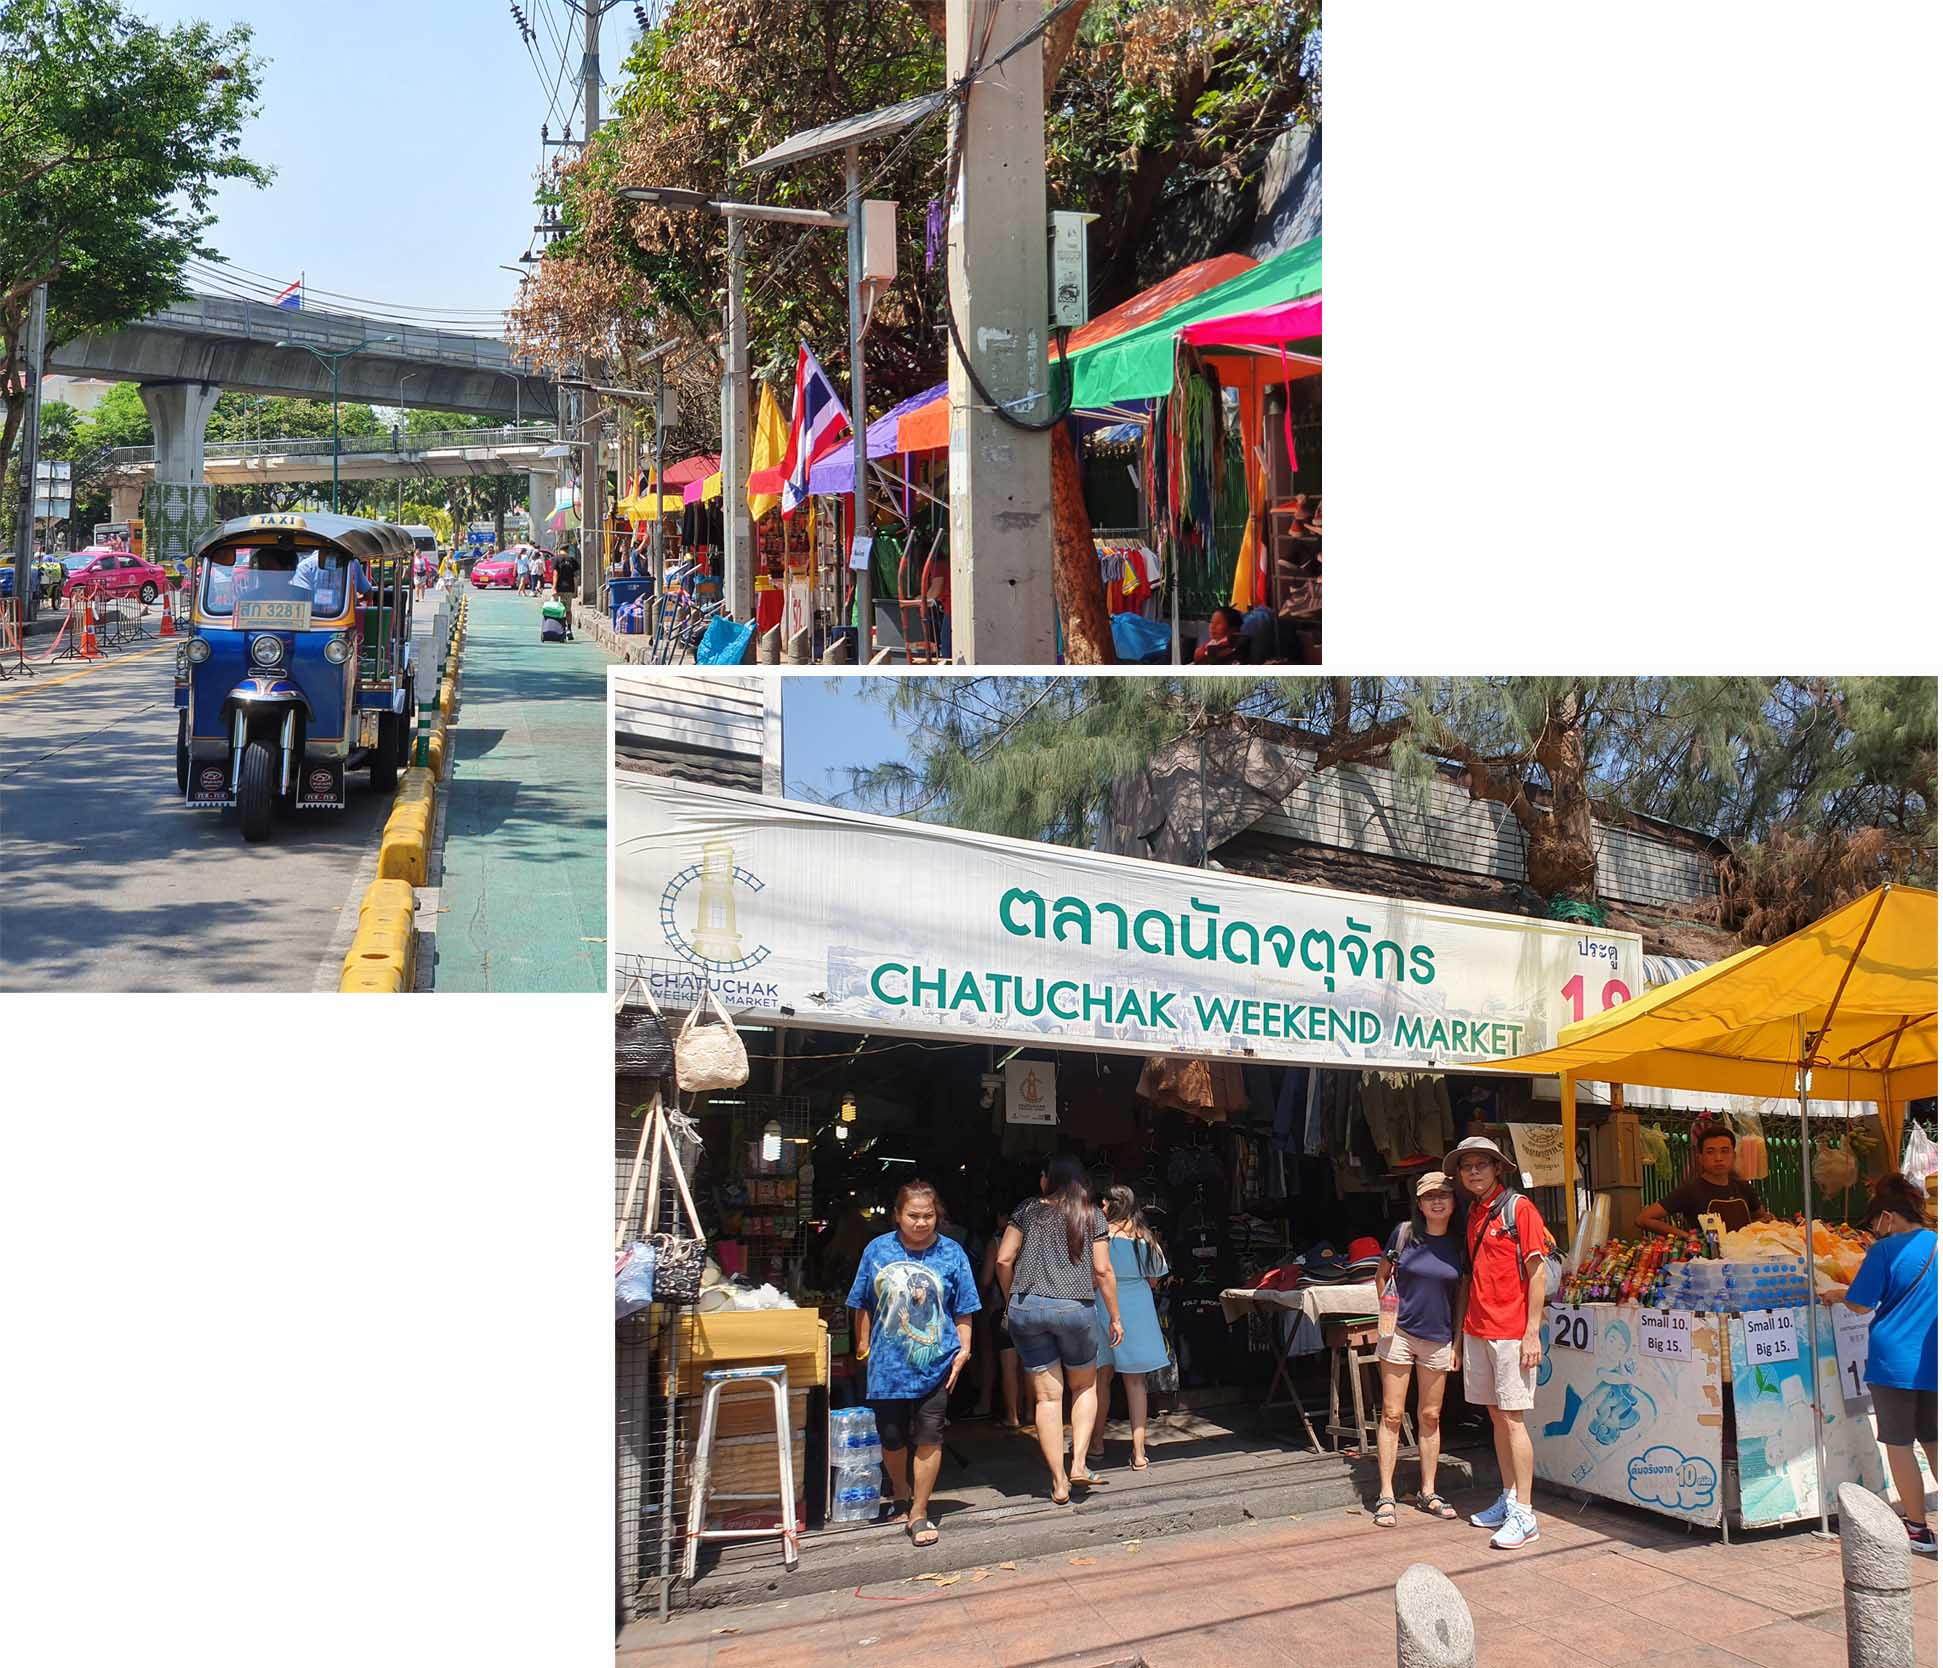 An entrance to Chatuchak weekend Market